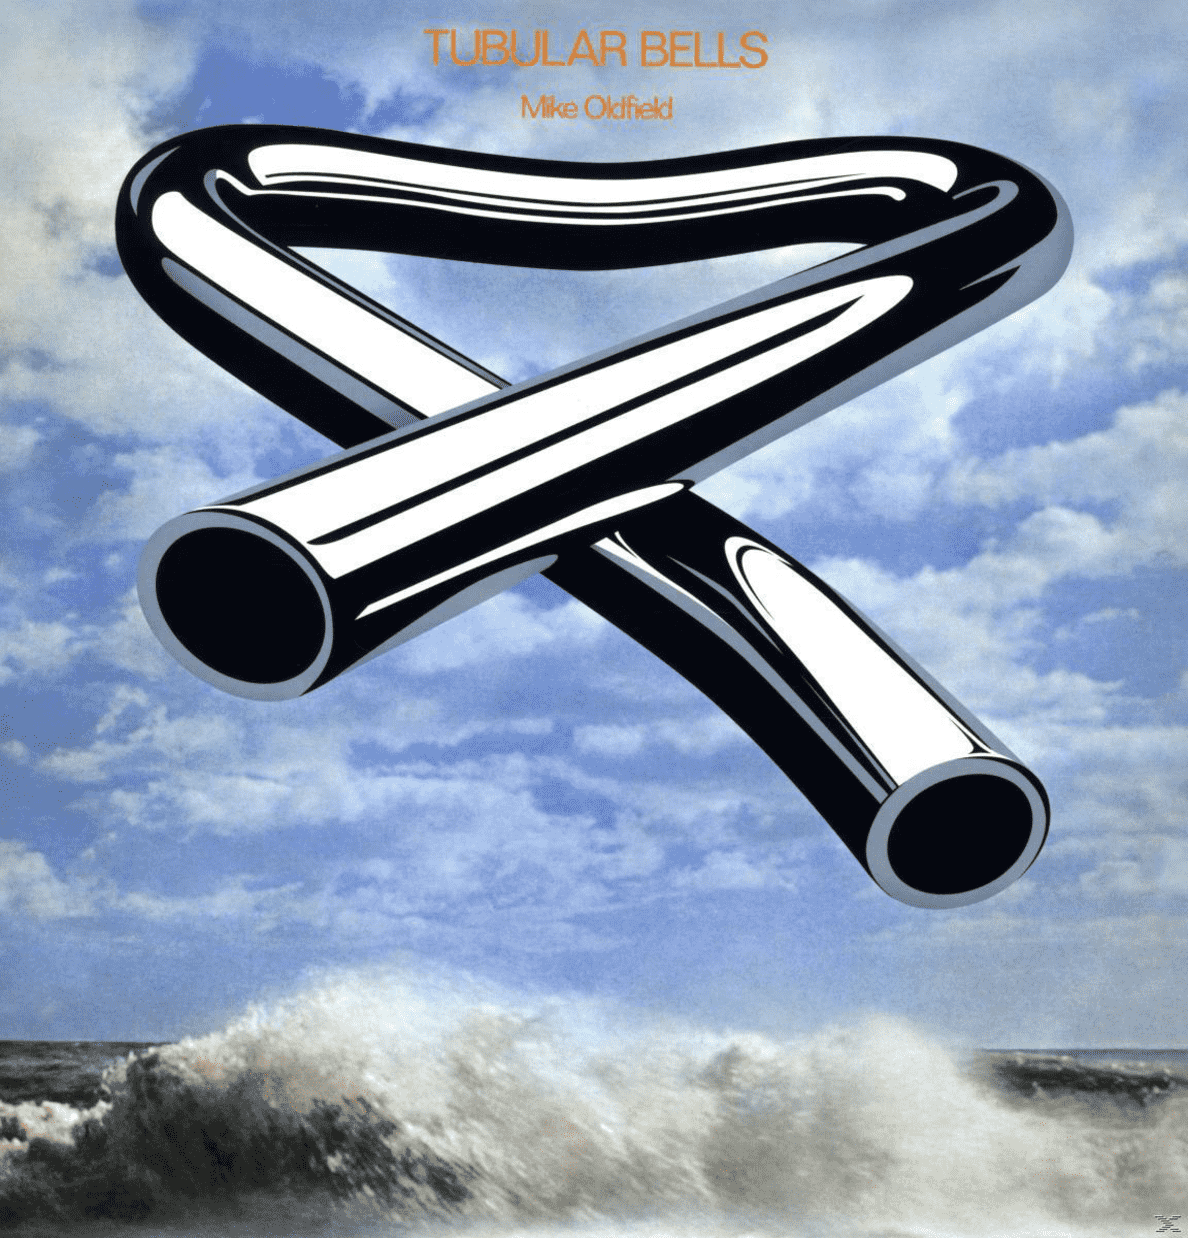 Tubular Bells (Remastered) Mike Oldfield auf Vinyl